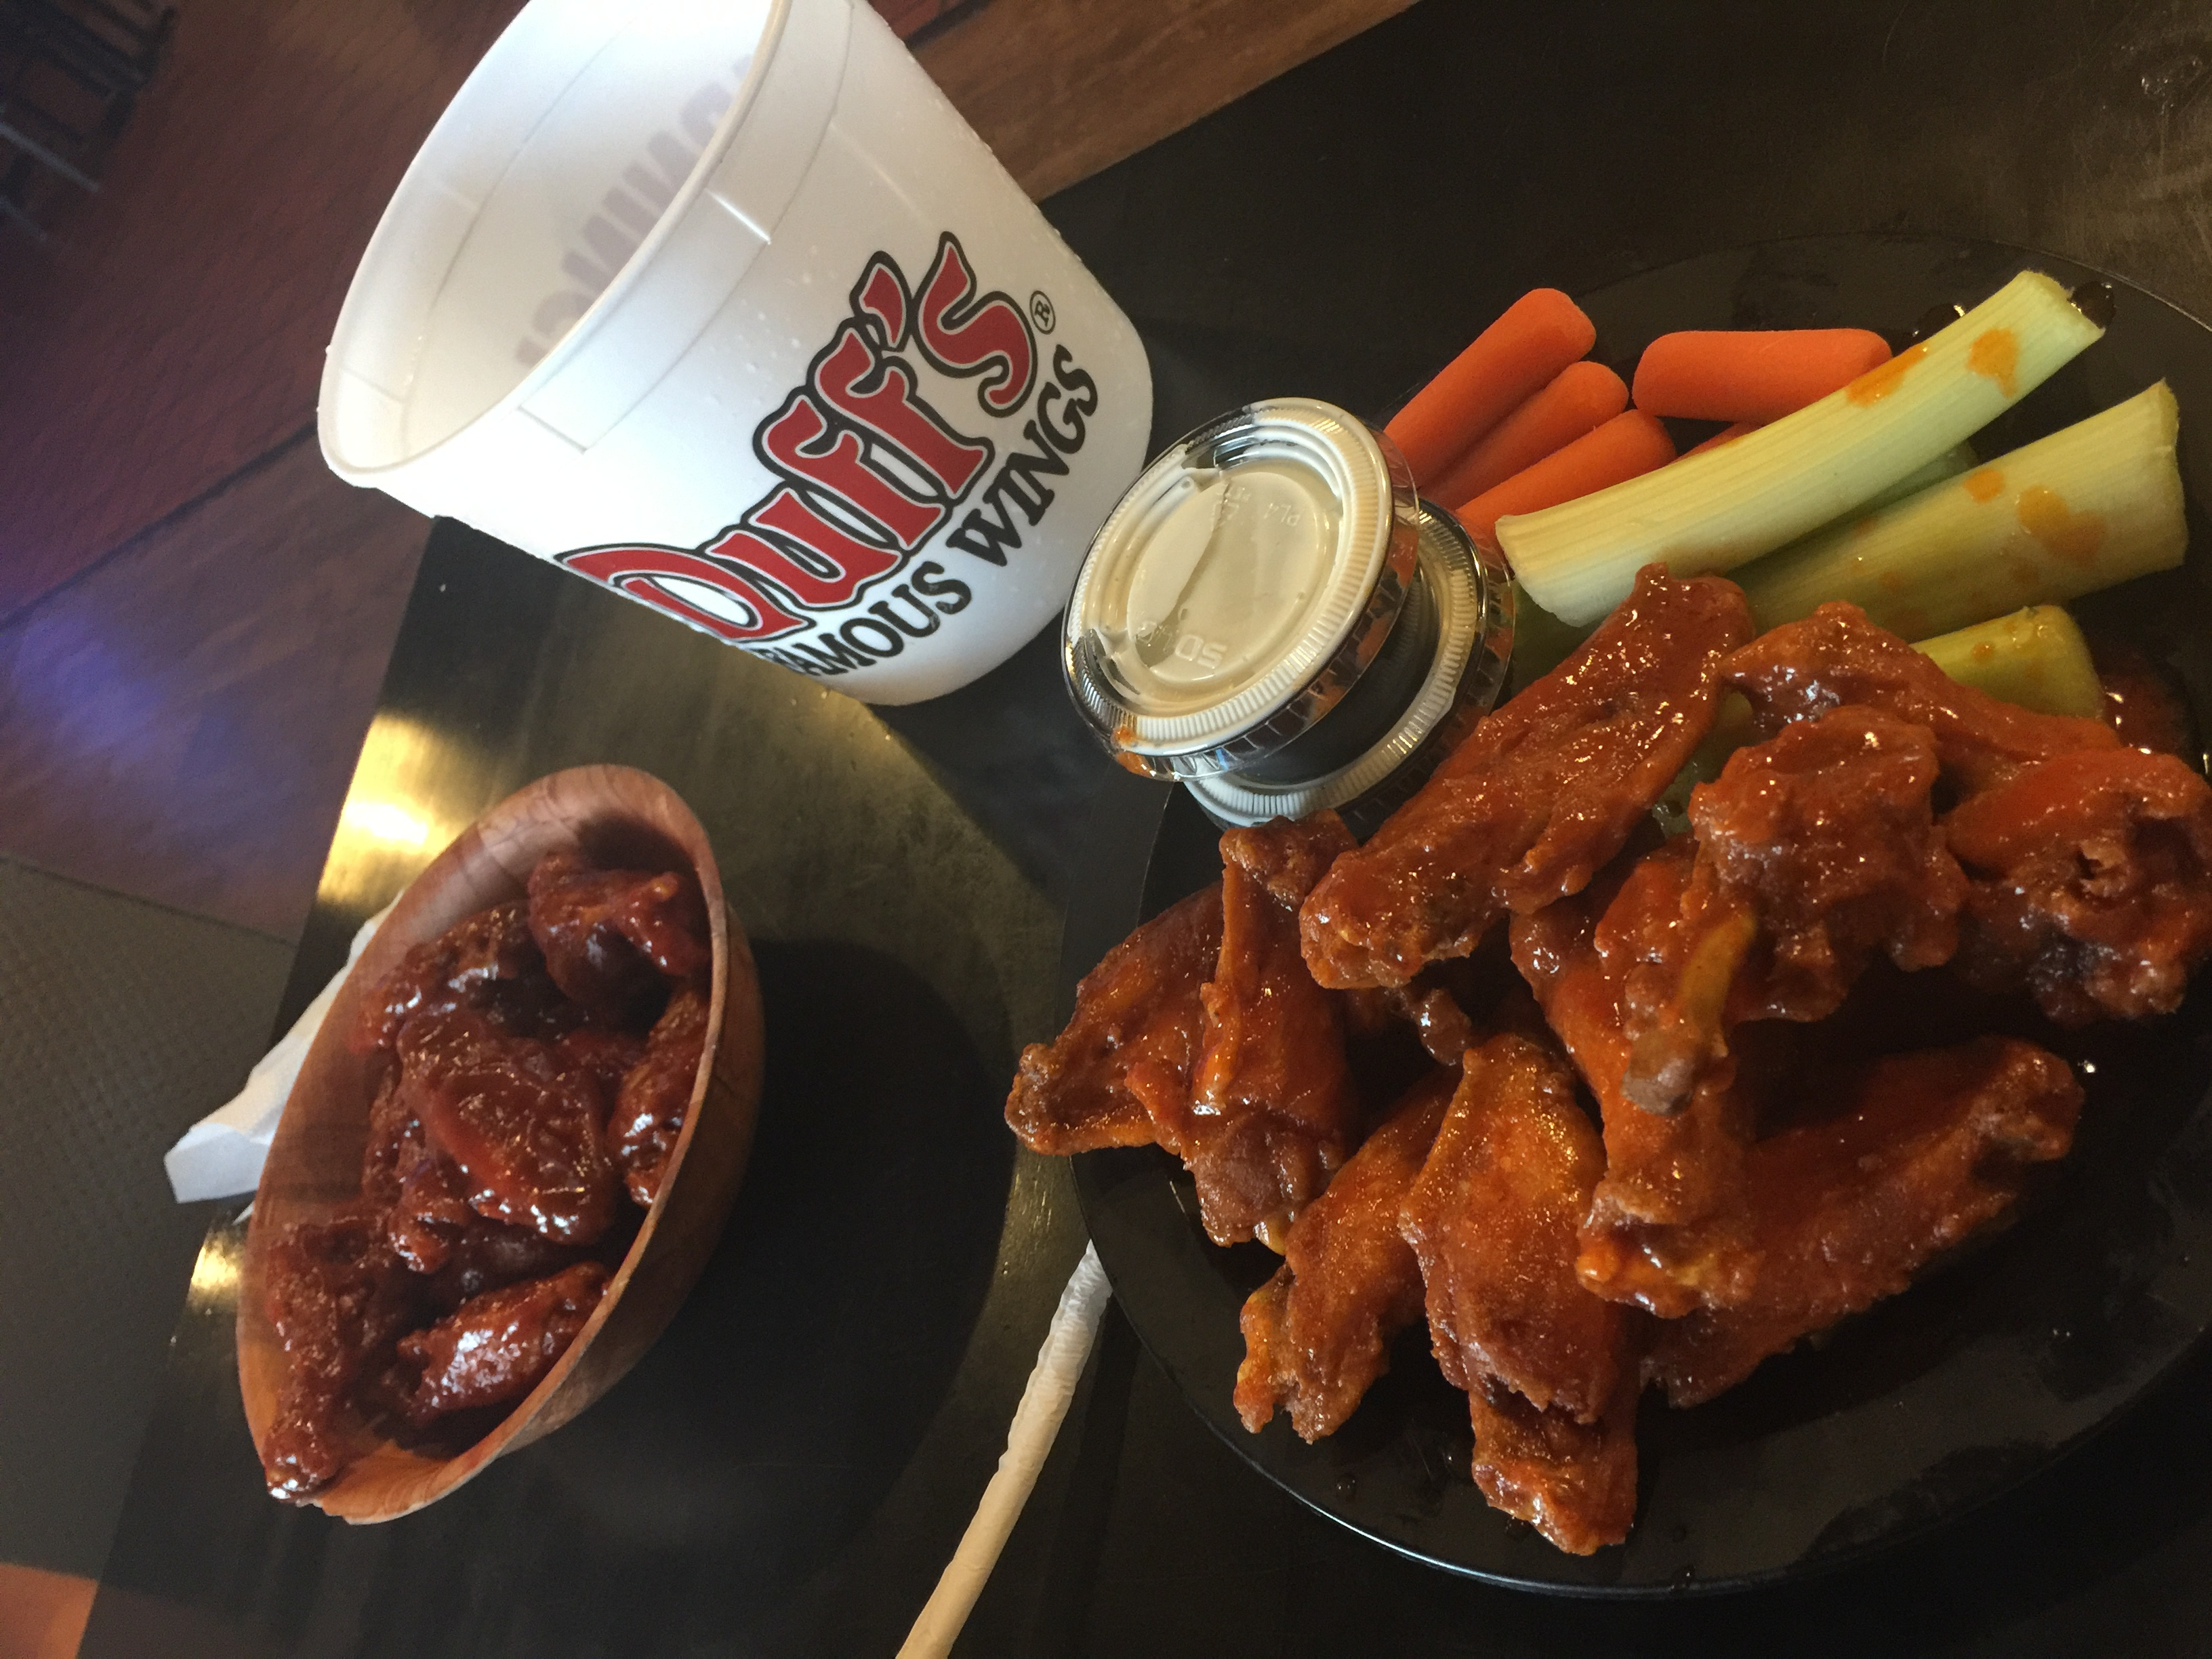 One of my first foods I ate when I got back was chicken wings.